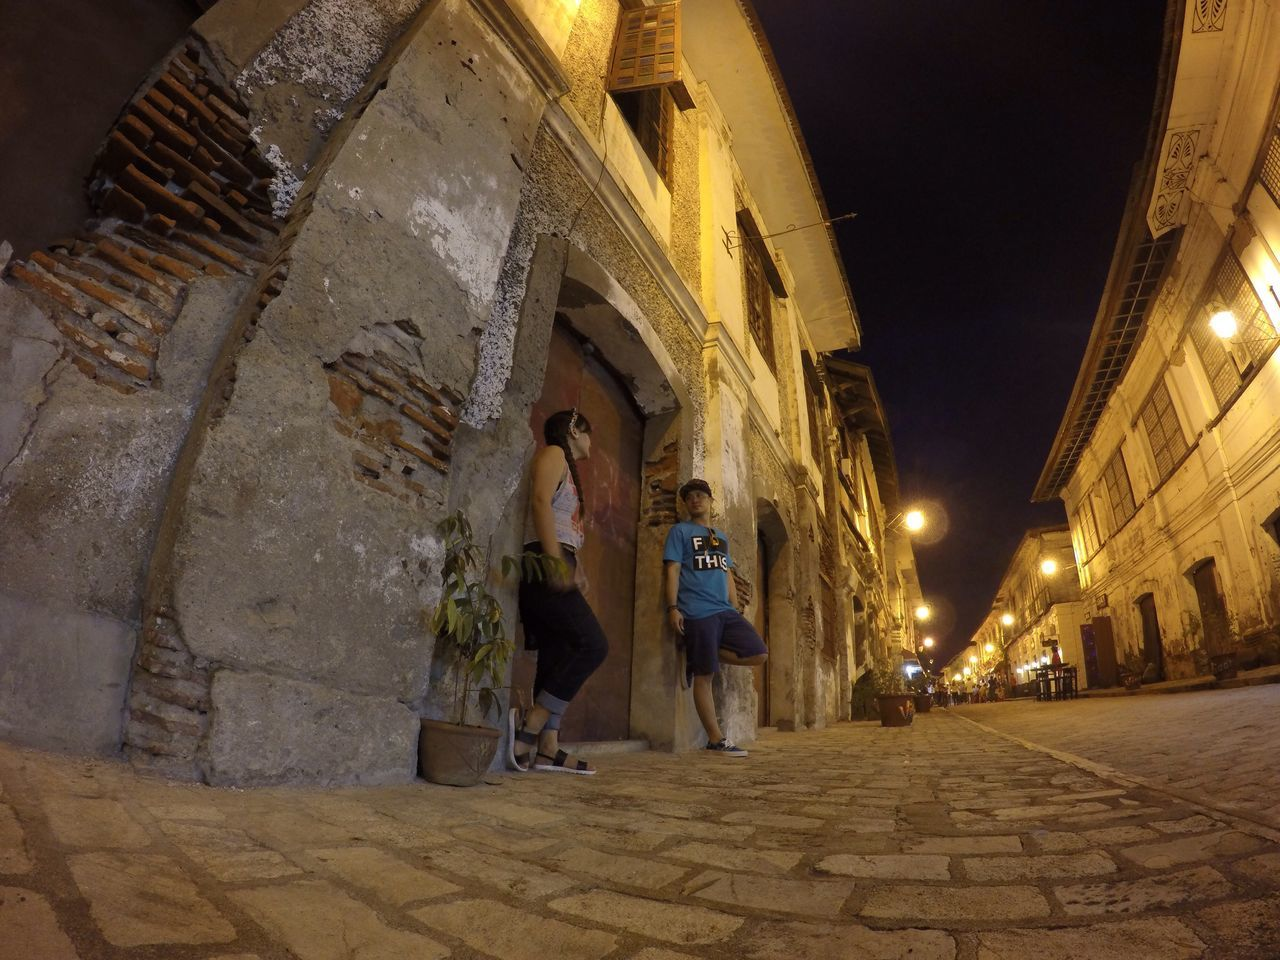 Old village in Vigan Ilocos Sur, Philippines Callecrisologo Oldhouses Backtothepast Philippines Couples Enjoying Life Check This Out Travel Destinations Travel Photography Life's Journey  OldButGold Oldbutnotforgotten Oldcity Vigan Philippines That's Me